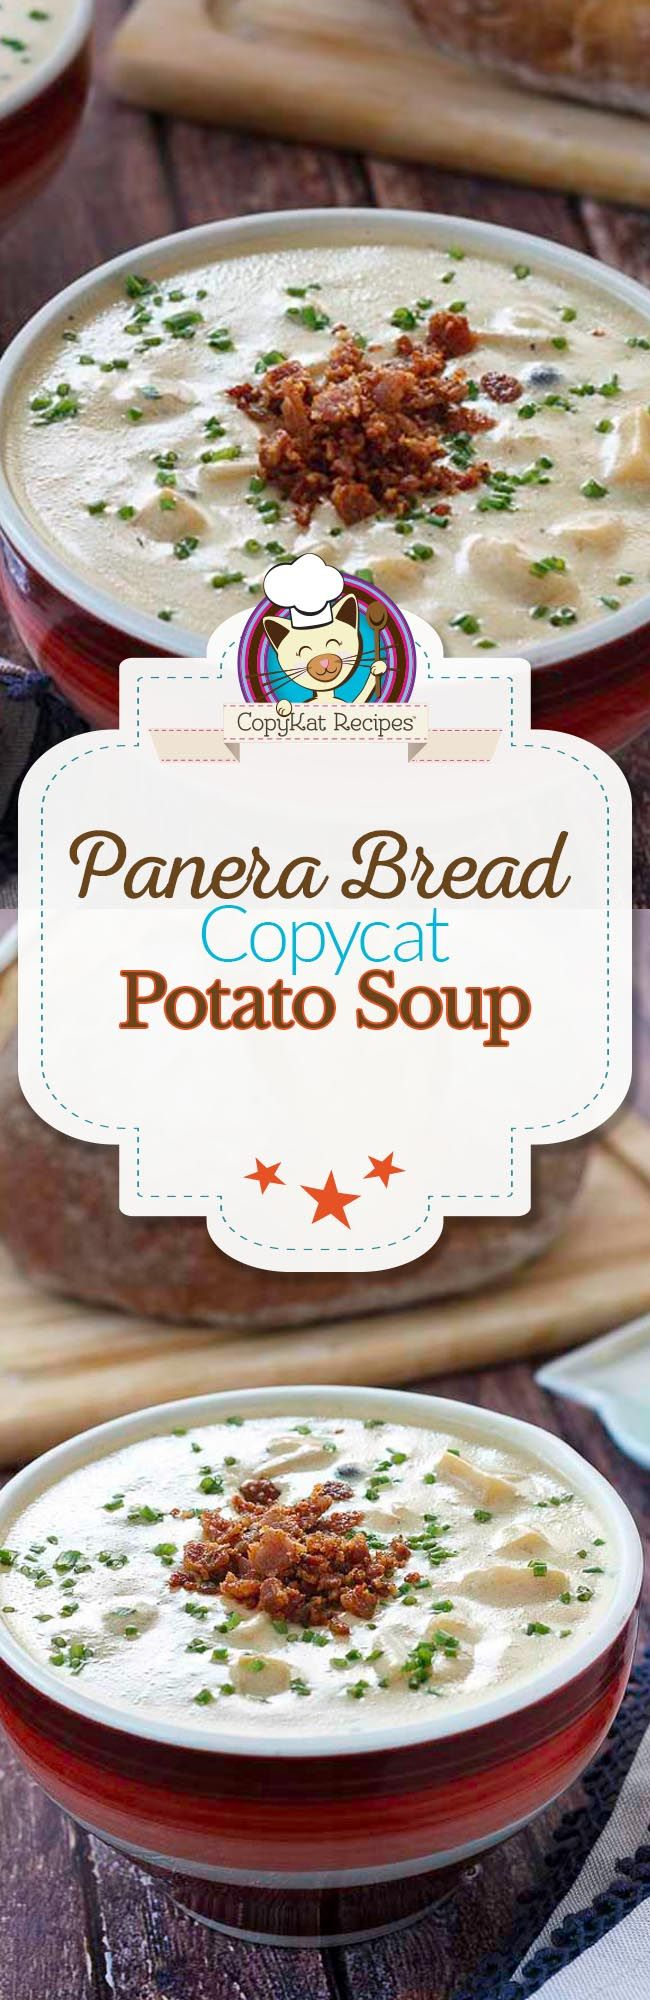 Panera Bread potato soup can be made in your own kitchen with this easy copycat recipe.